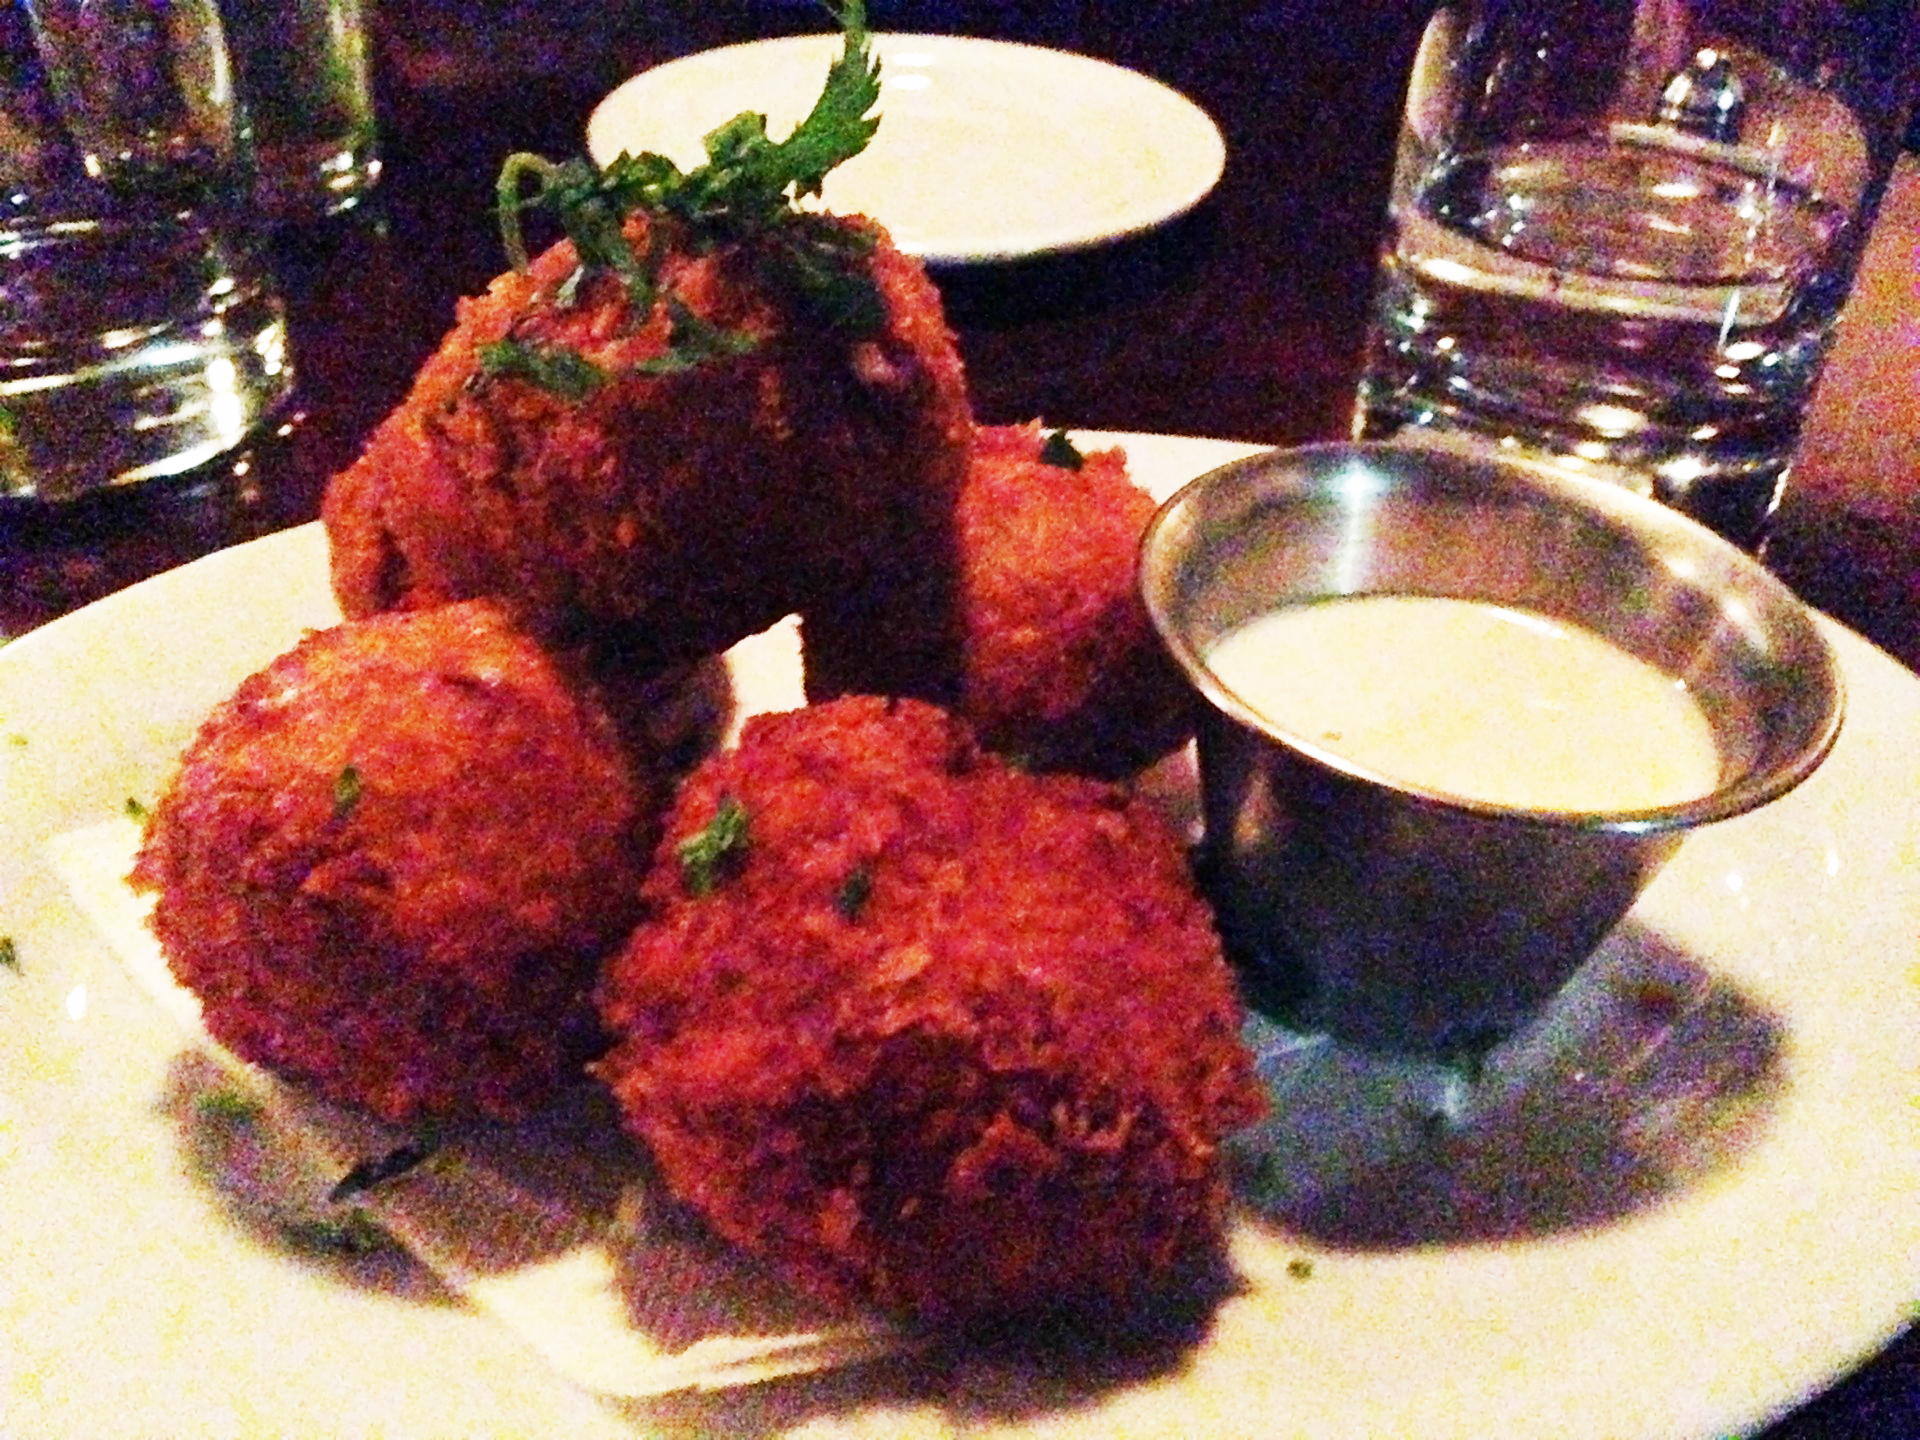 Mac and cheese fritters at Luka's in Oakland.